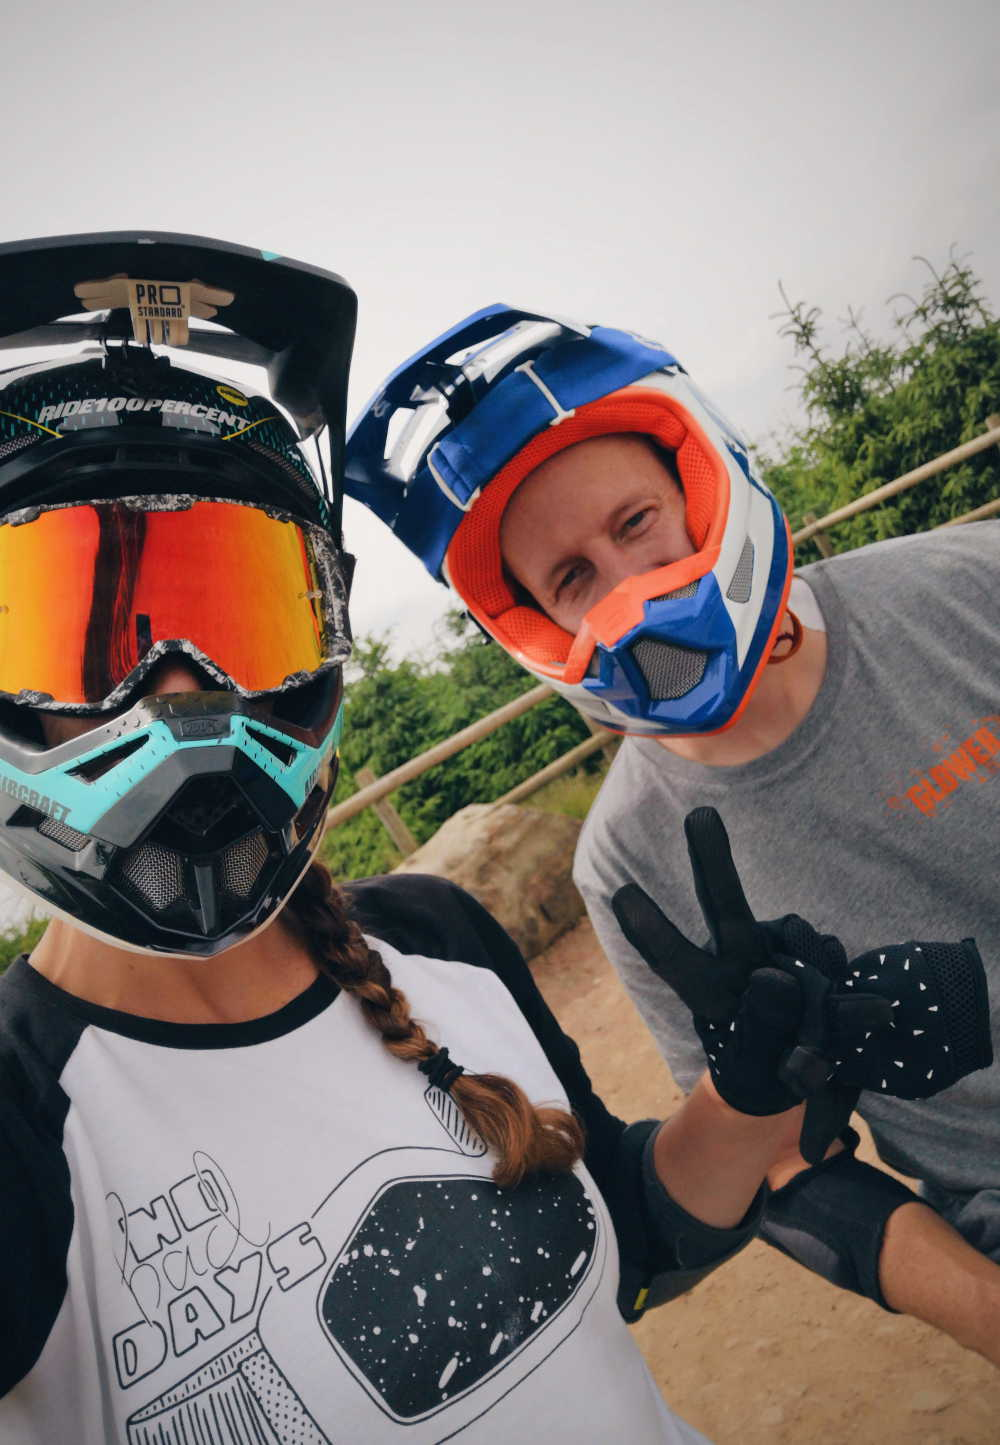 Glower clothing crew at Bike Park Wales shredding